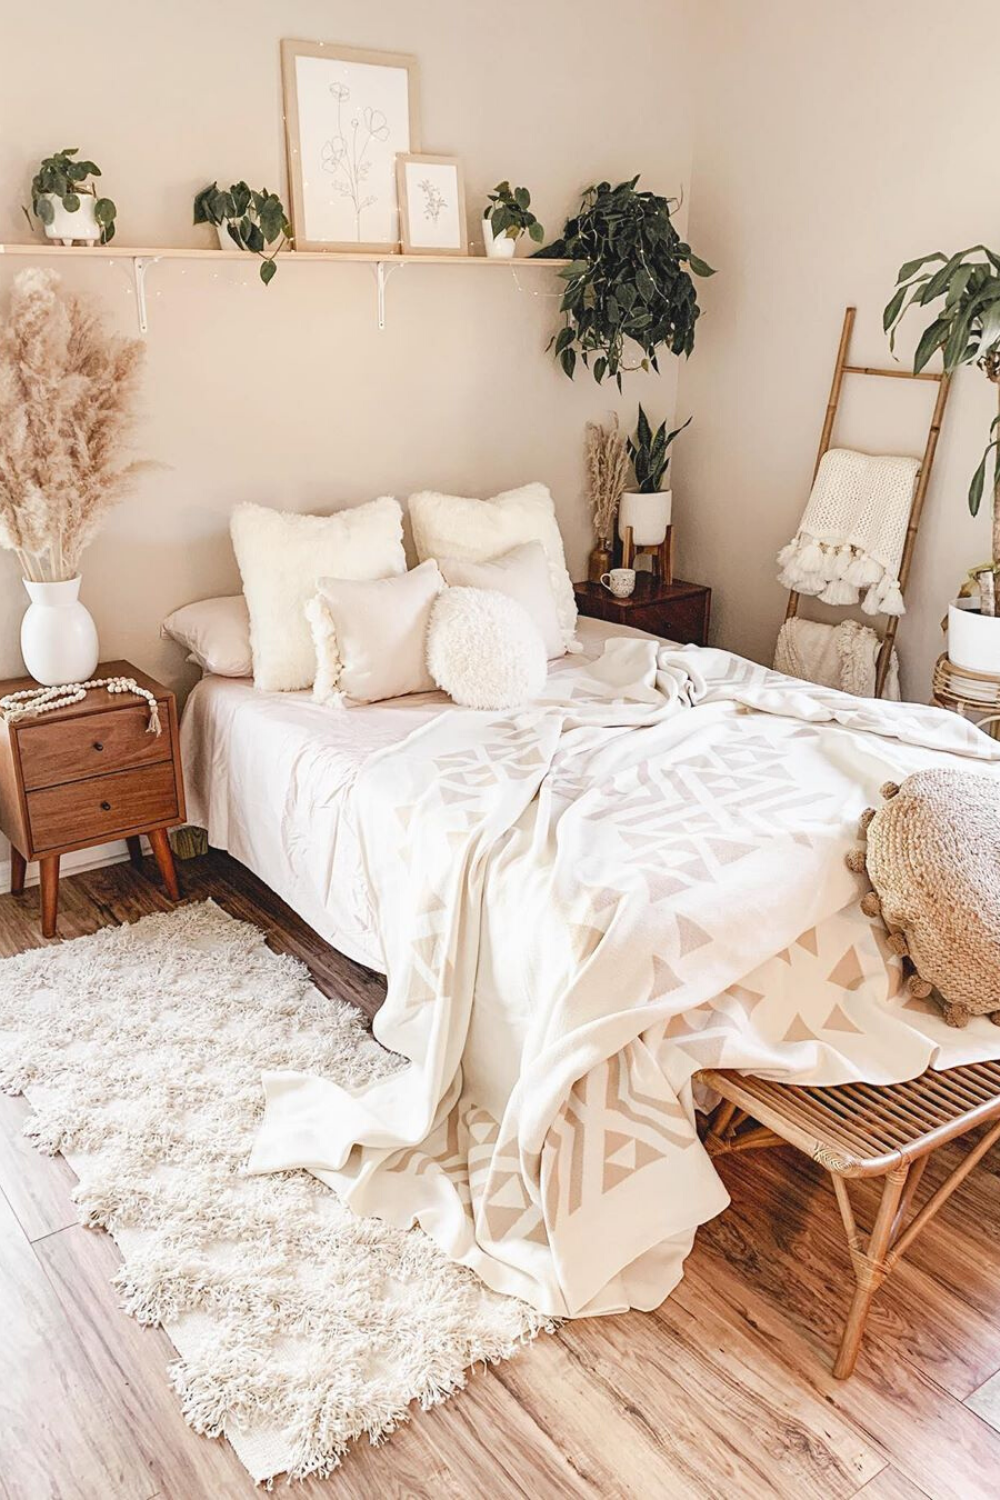 Pin By Emma Wedemeyer On Bedroom Cozy Room Decor Home Decor Bedroom Redecorate Bedroom